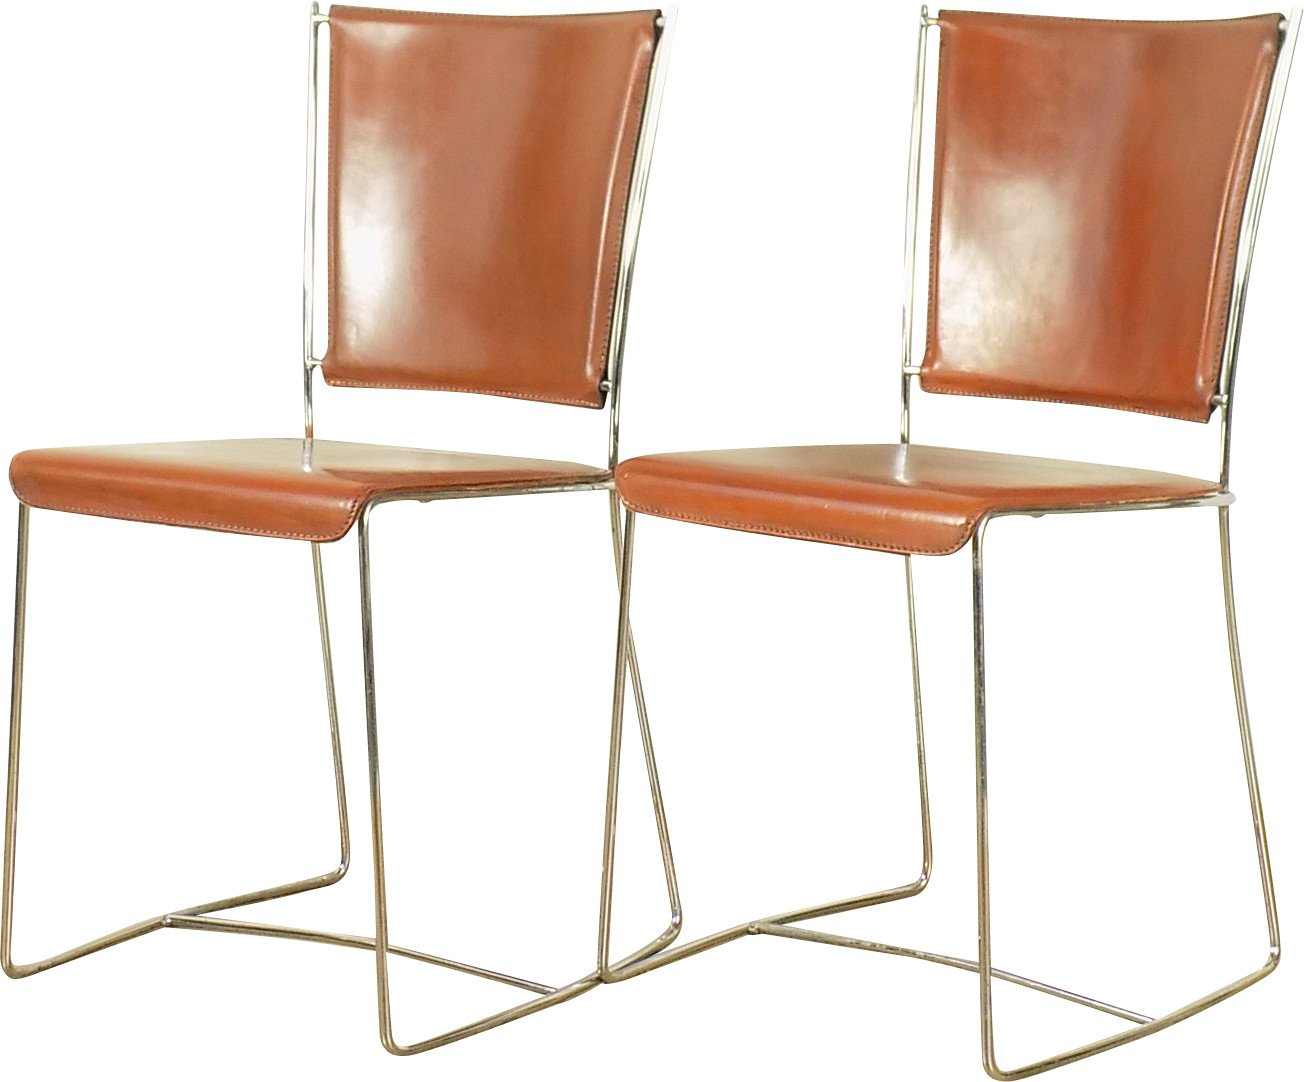 Pair of Chairs, Italy, 1970s